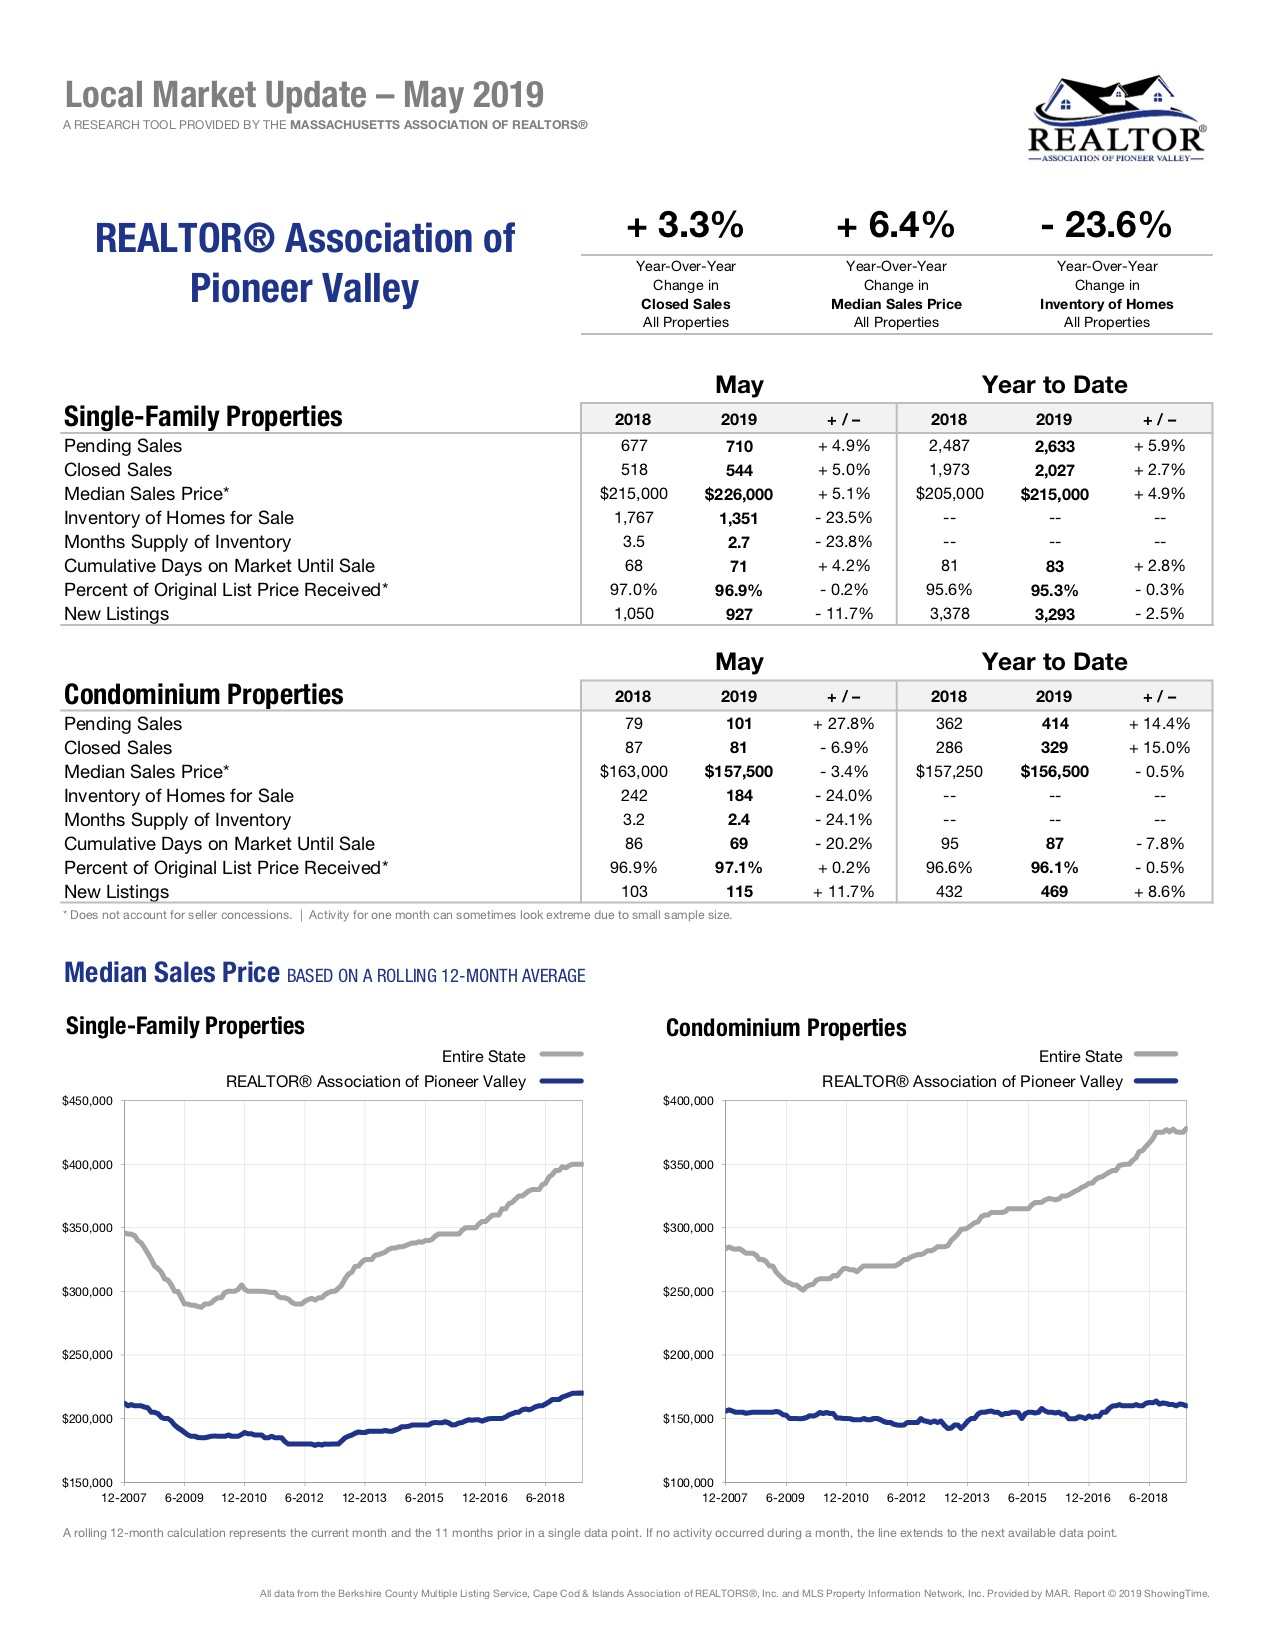 pioneer valley local market update massachusetts real estate sale report